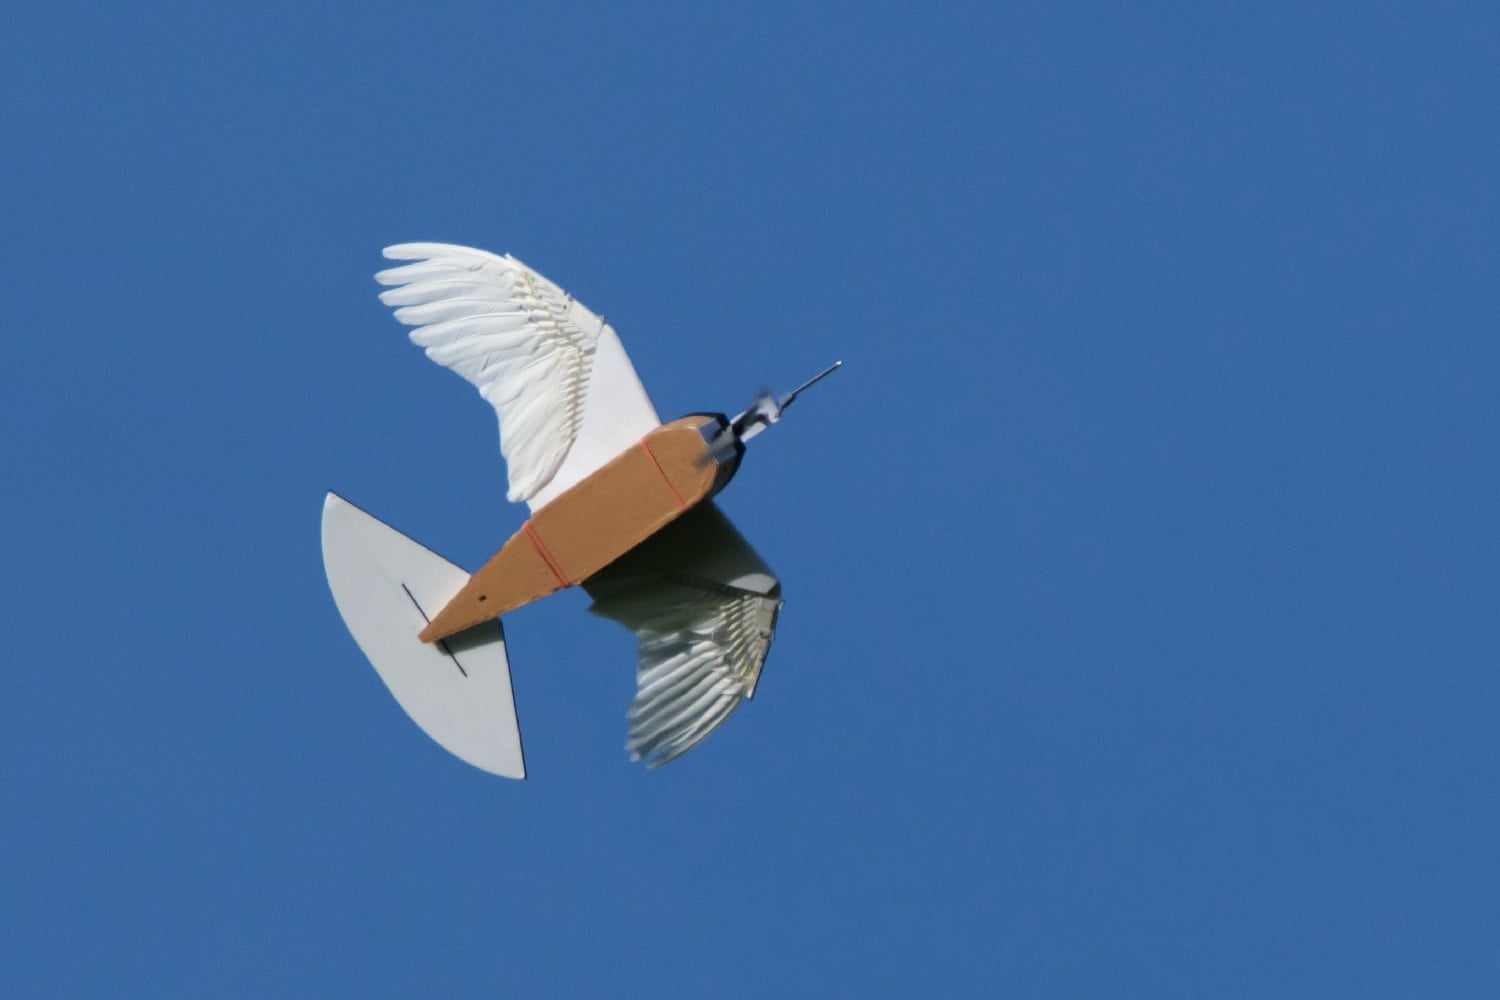 pigeon bot feather drone takes flight dl0 0218 2